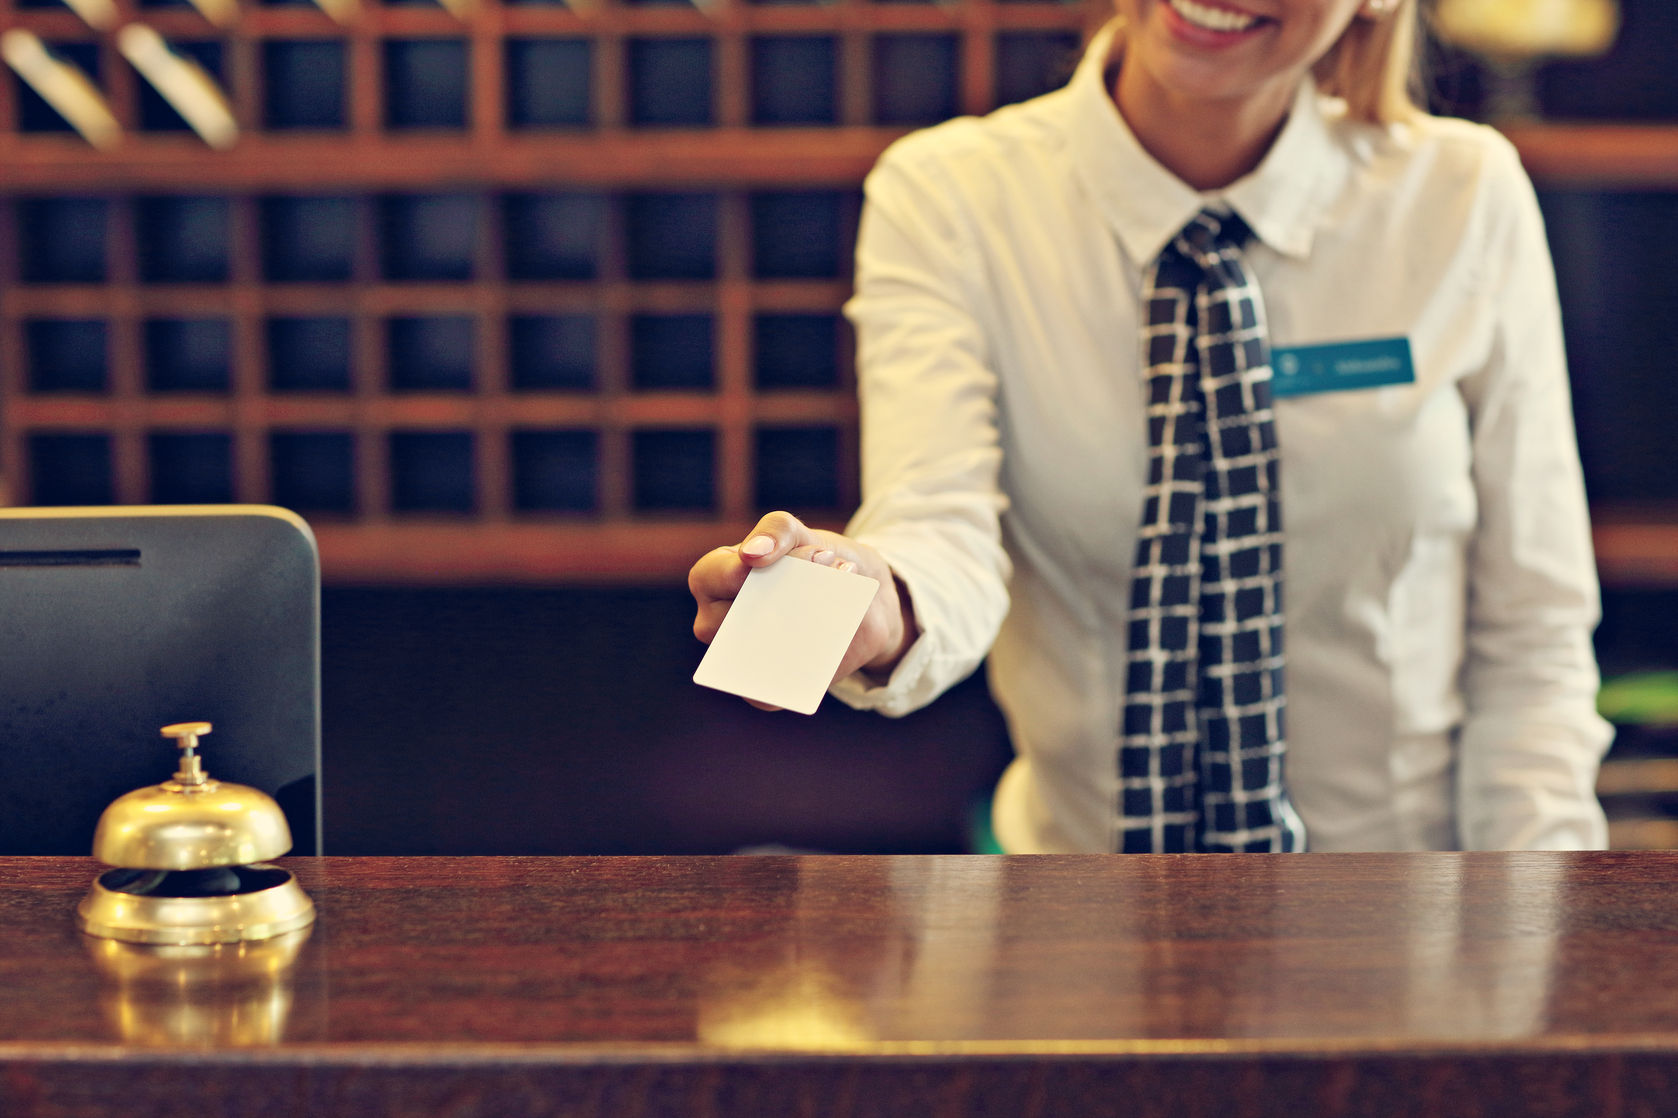 64761984 - picture of receptionist giving key card